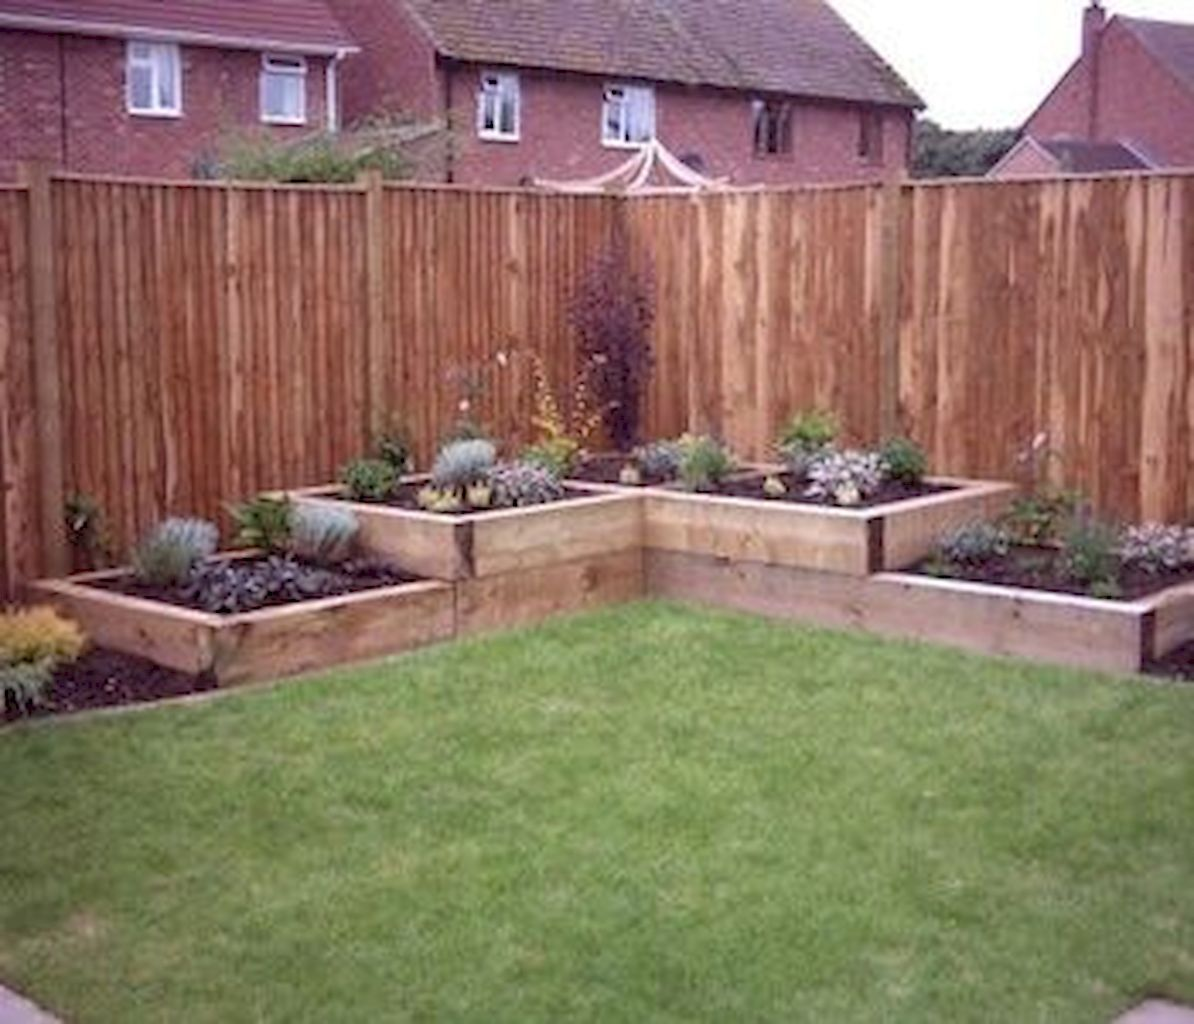 40 beautiful backyard landscaping ideas on a budget Cheap back garden ideas